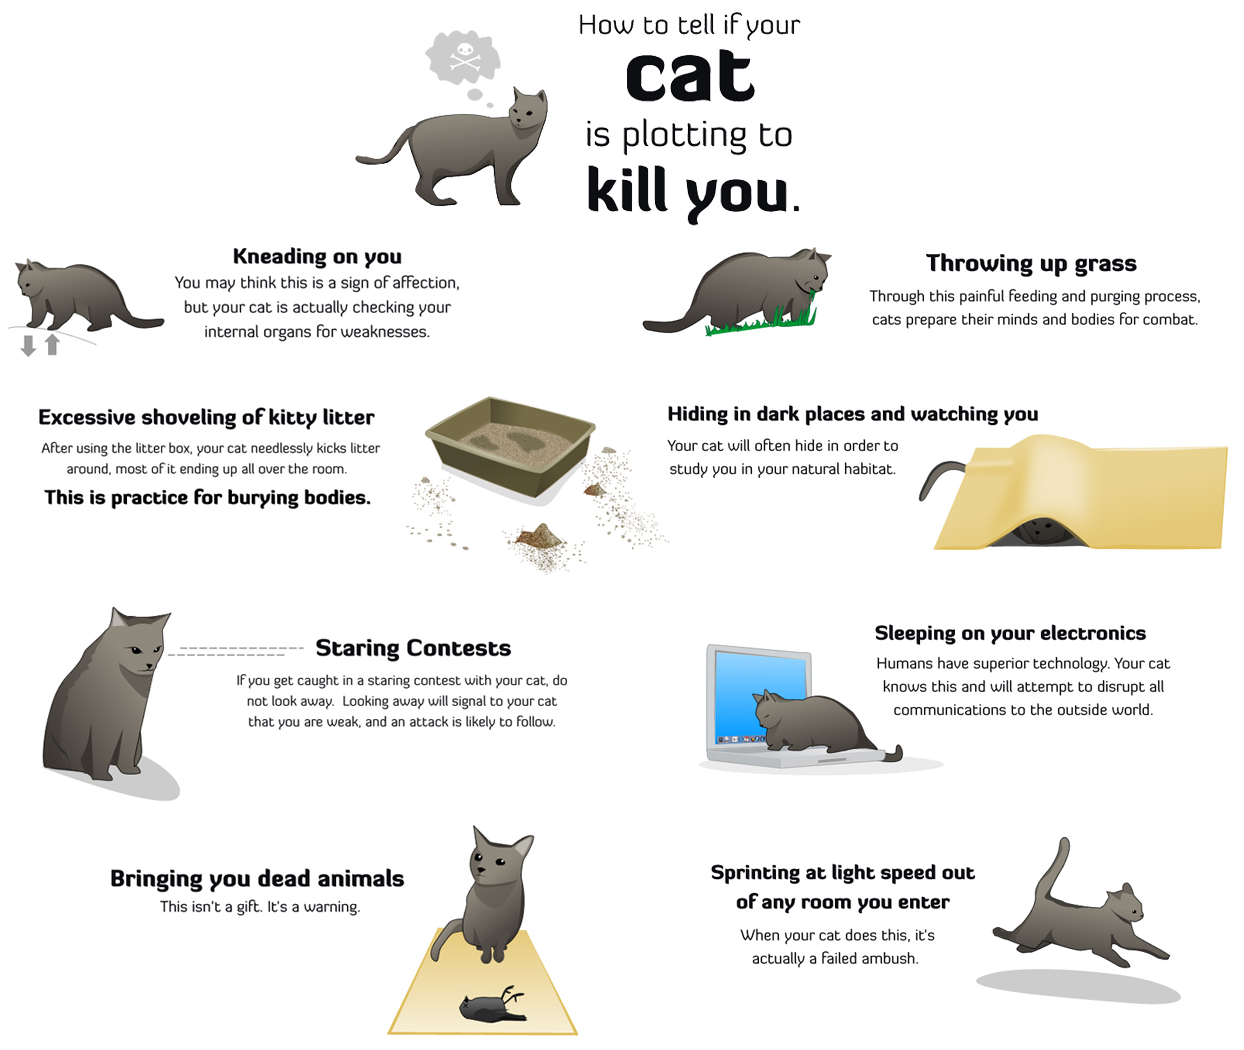 How to know if your Cat is plotting to kill you